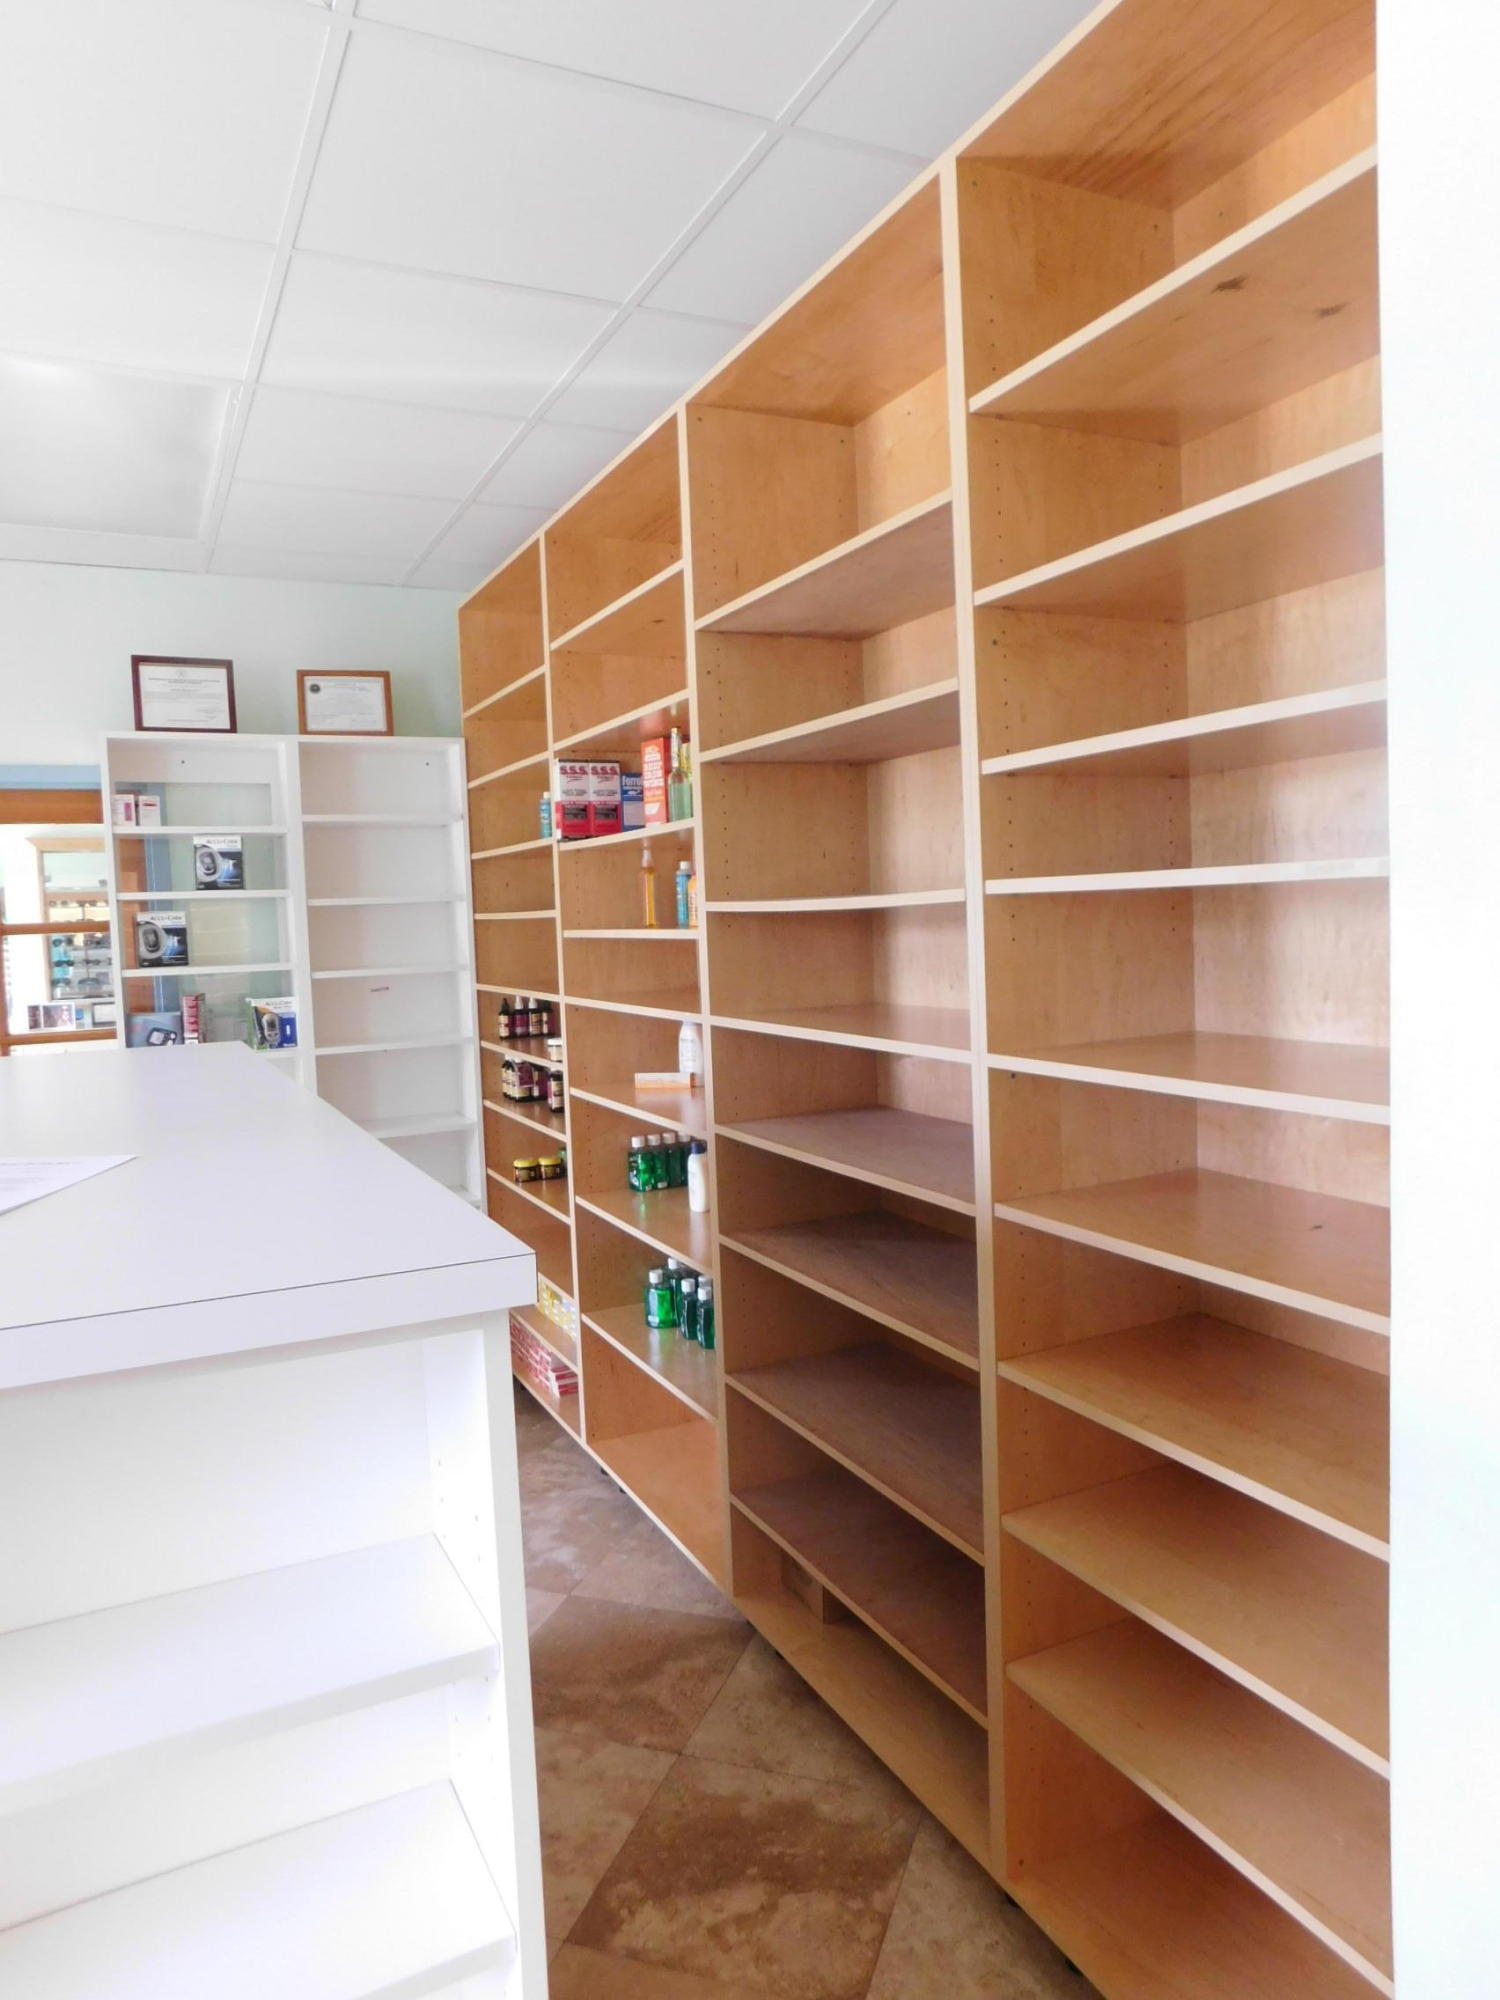 Lots of shelving to display products